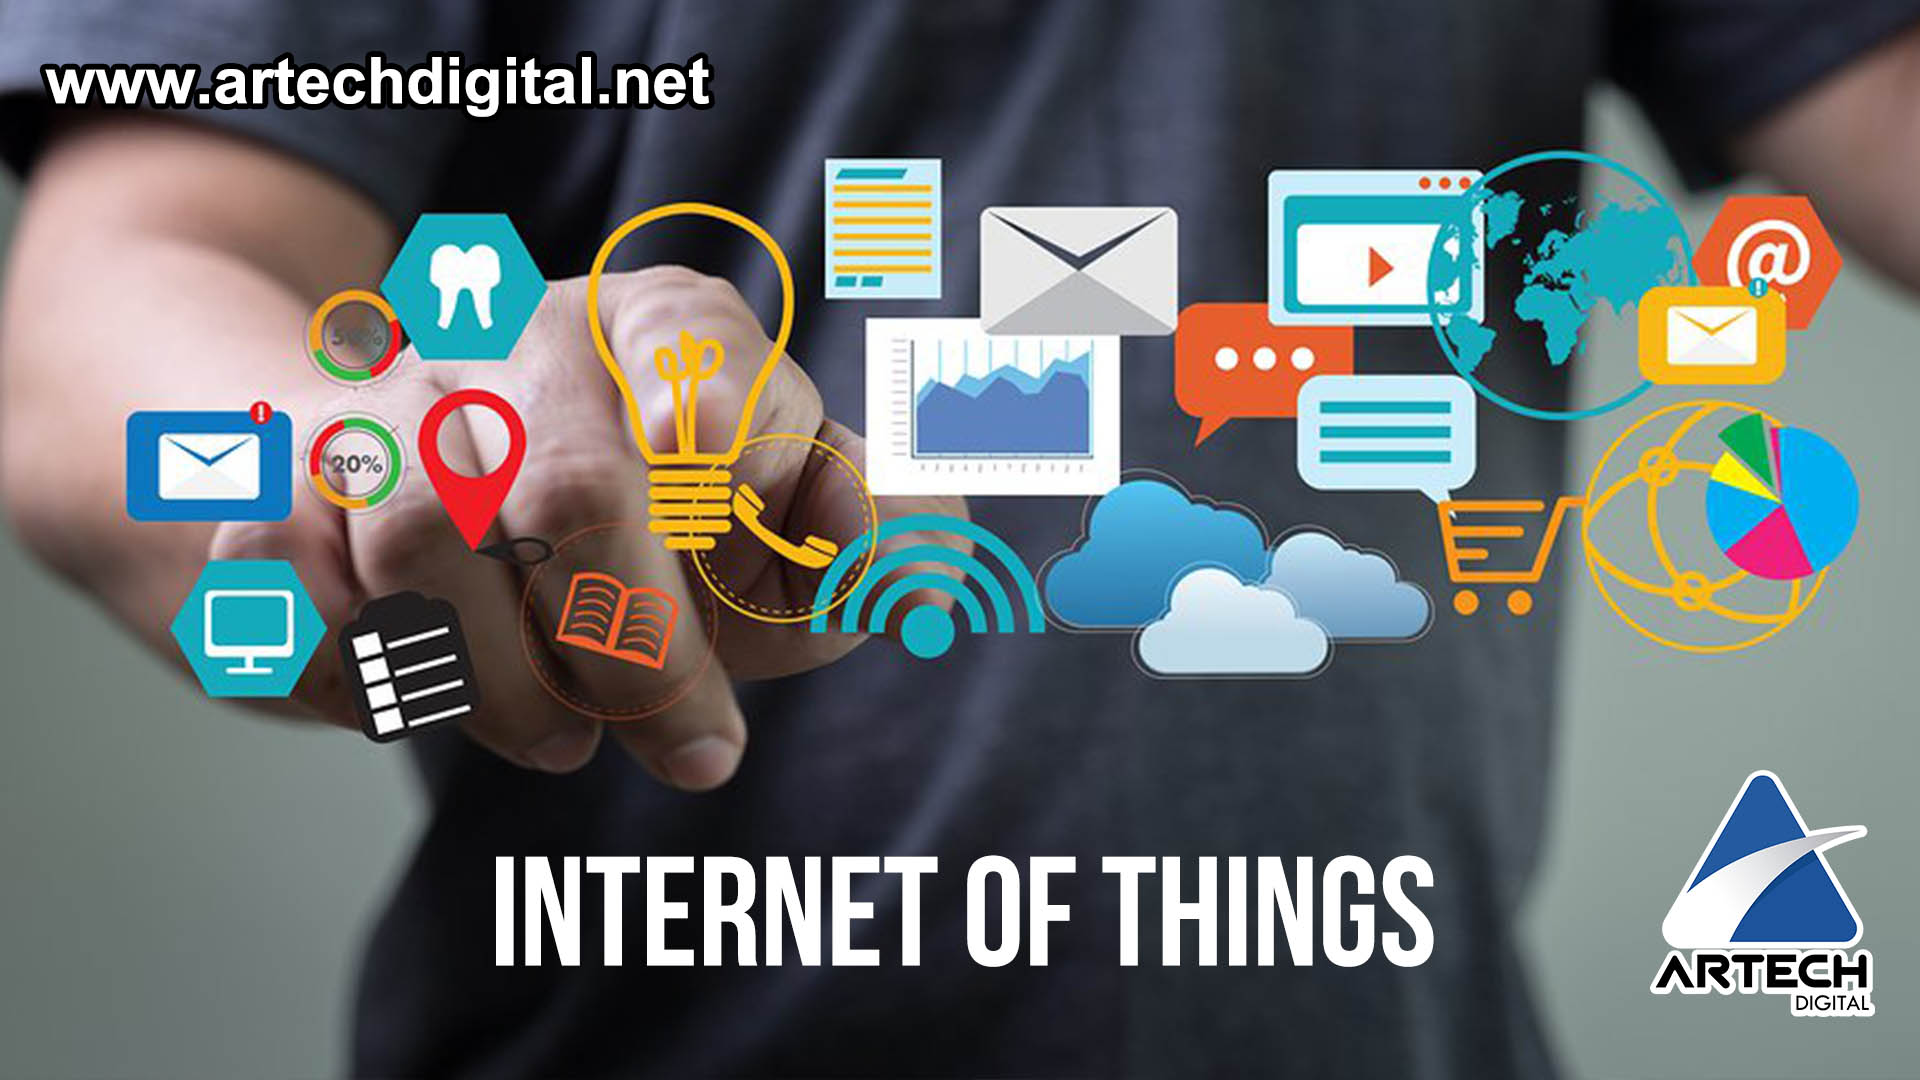 Internet of Things in Digital Marketing